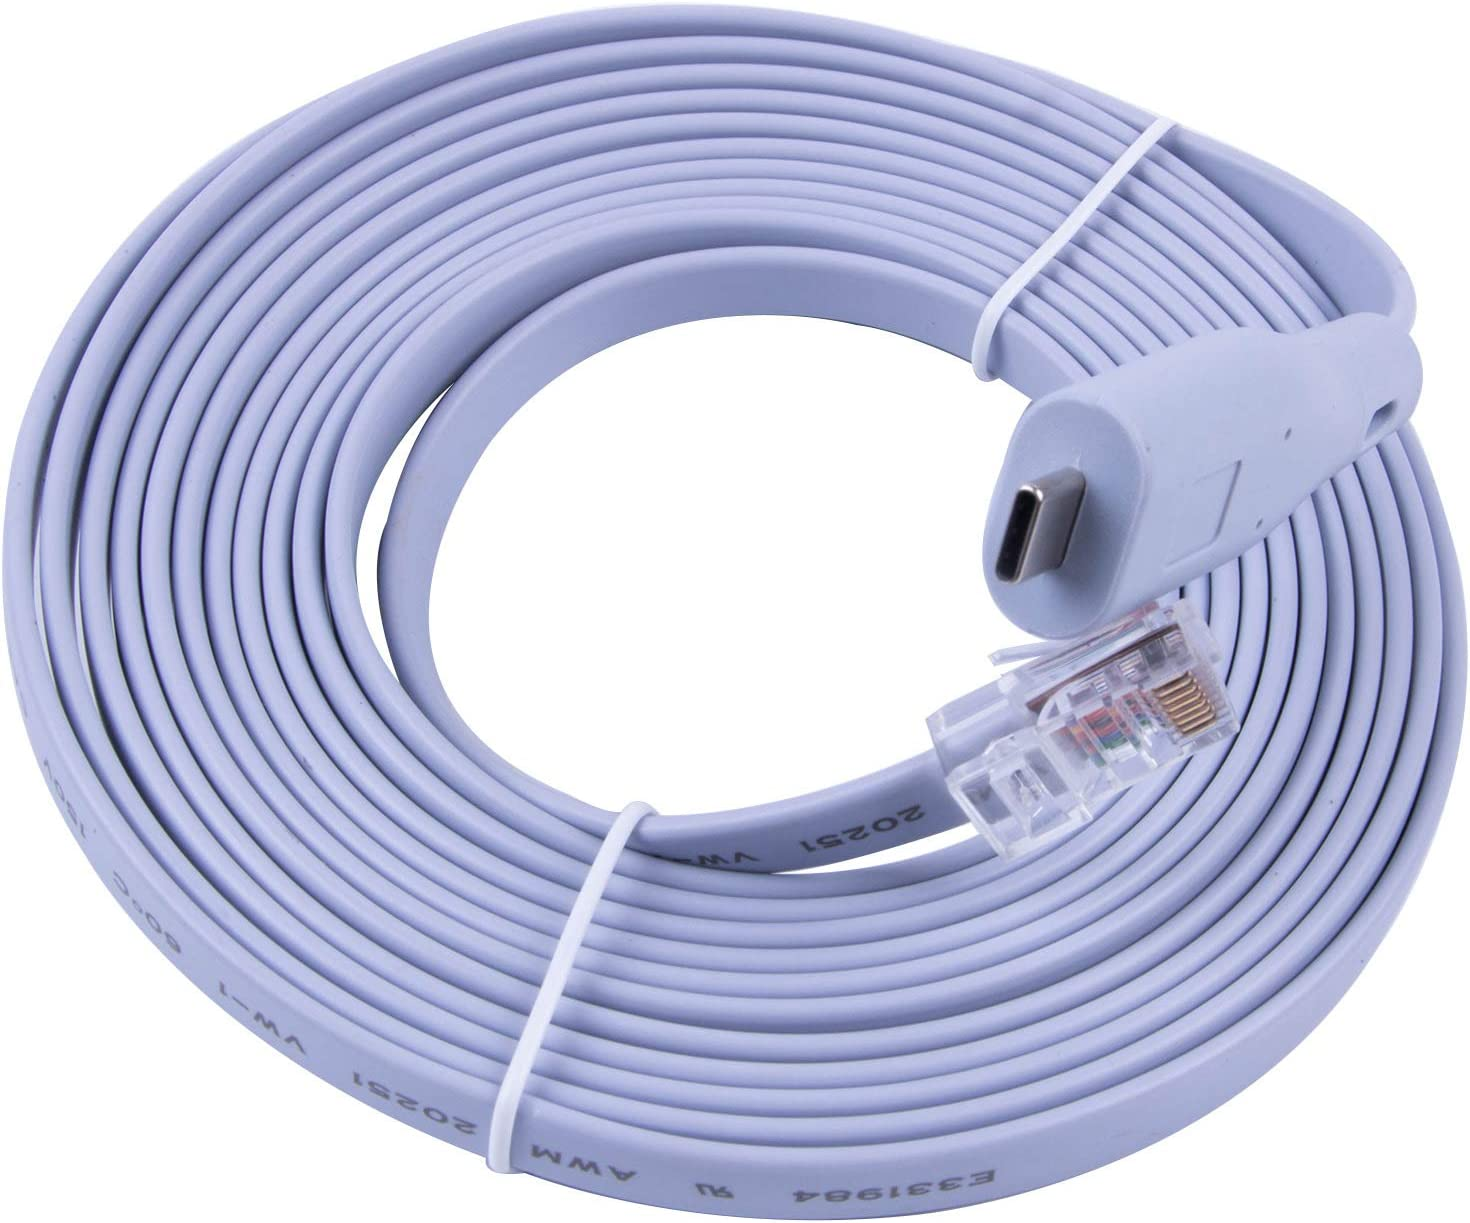 Type C to RJ45 RS232 Serial Converter Console Cable FTDI Max 61% OFF Adapter Import